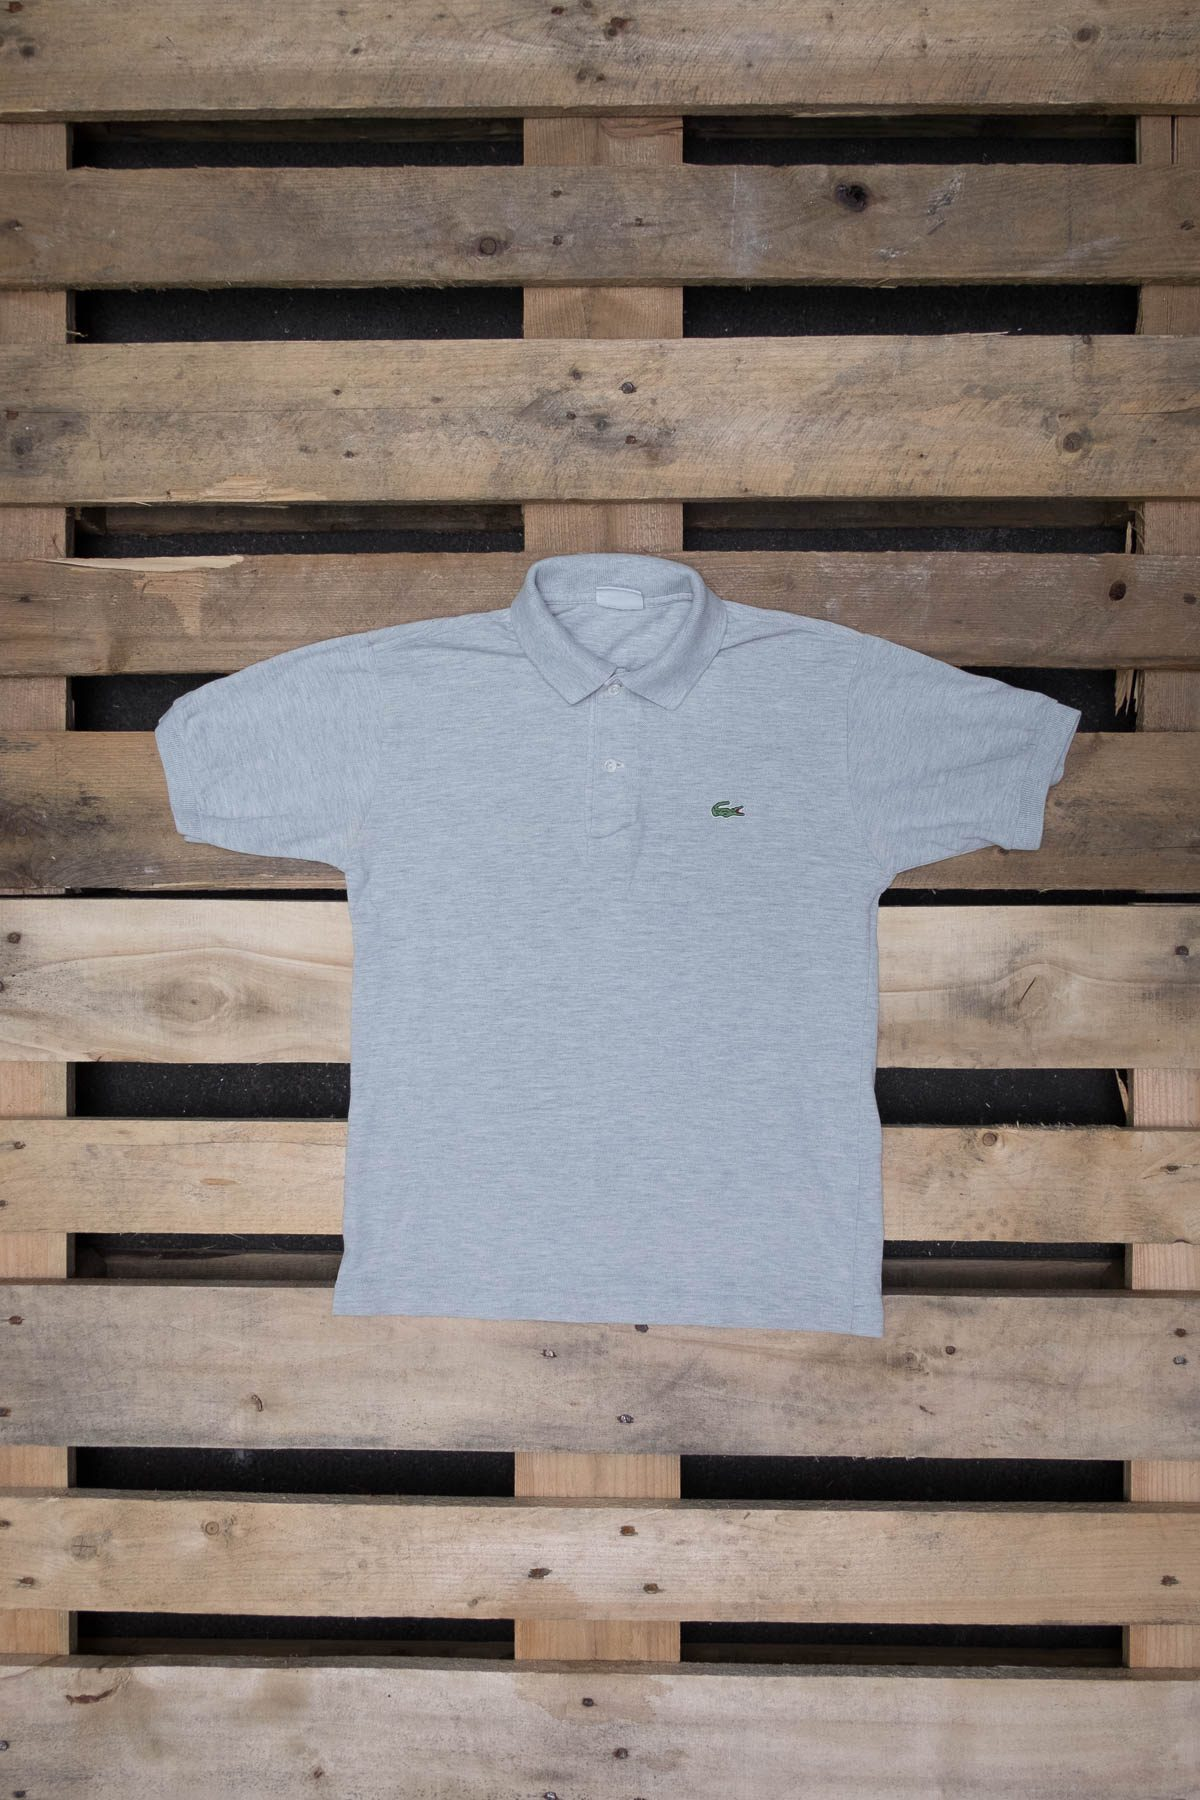 Lacoste T-SHIRT POLO VINTAGE Grey